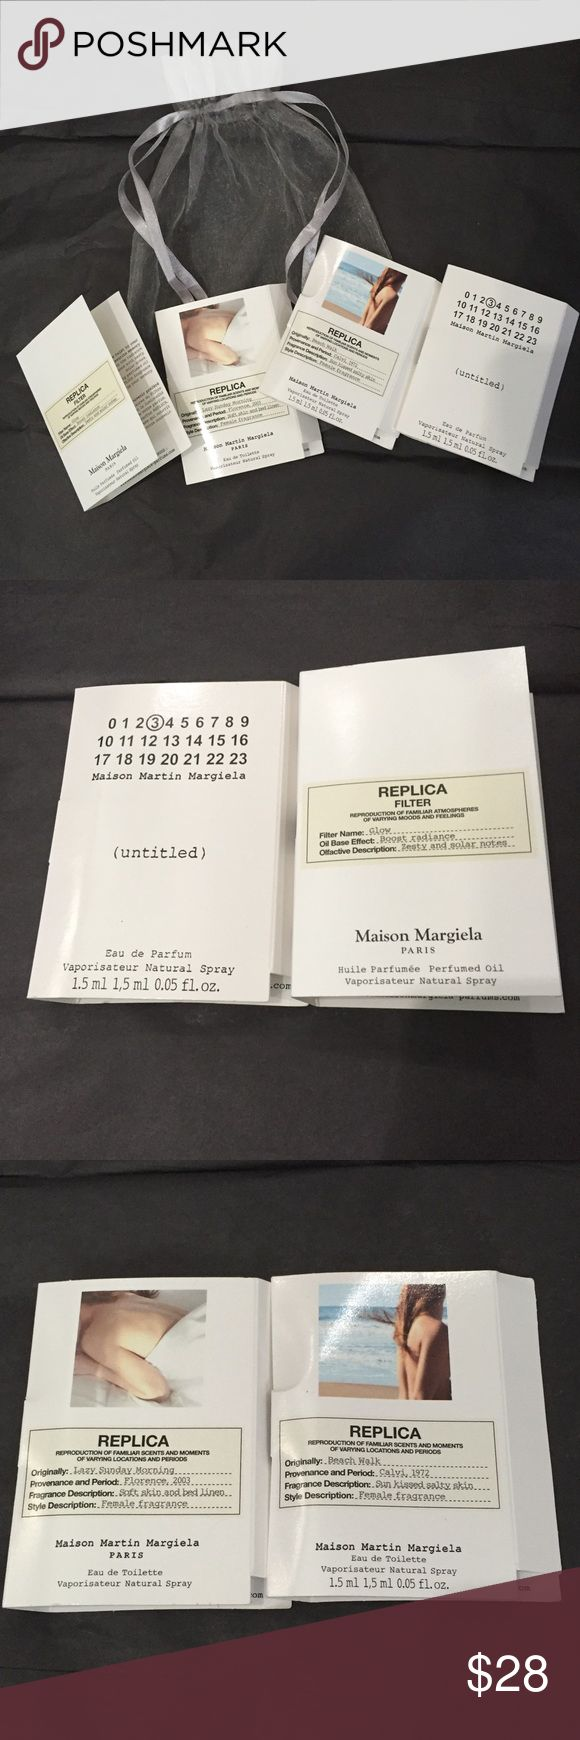 Replica Fragrances Replica by Maison Margiela, Paris perfume vials 4 count includes: Glow boost radiance zesty & solar notes, Beach Walk sun kisses salty skin, Lazy Sunday Morning soft skin & bed linen, Untitled #3 all female fragrances, silk pouch include it!!! Maison Margiela Makeup Eye Primer